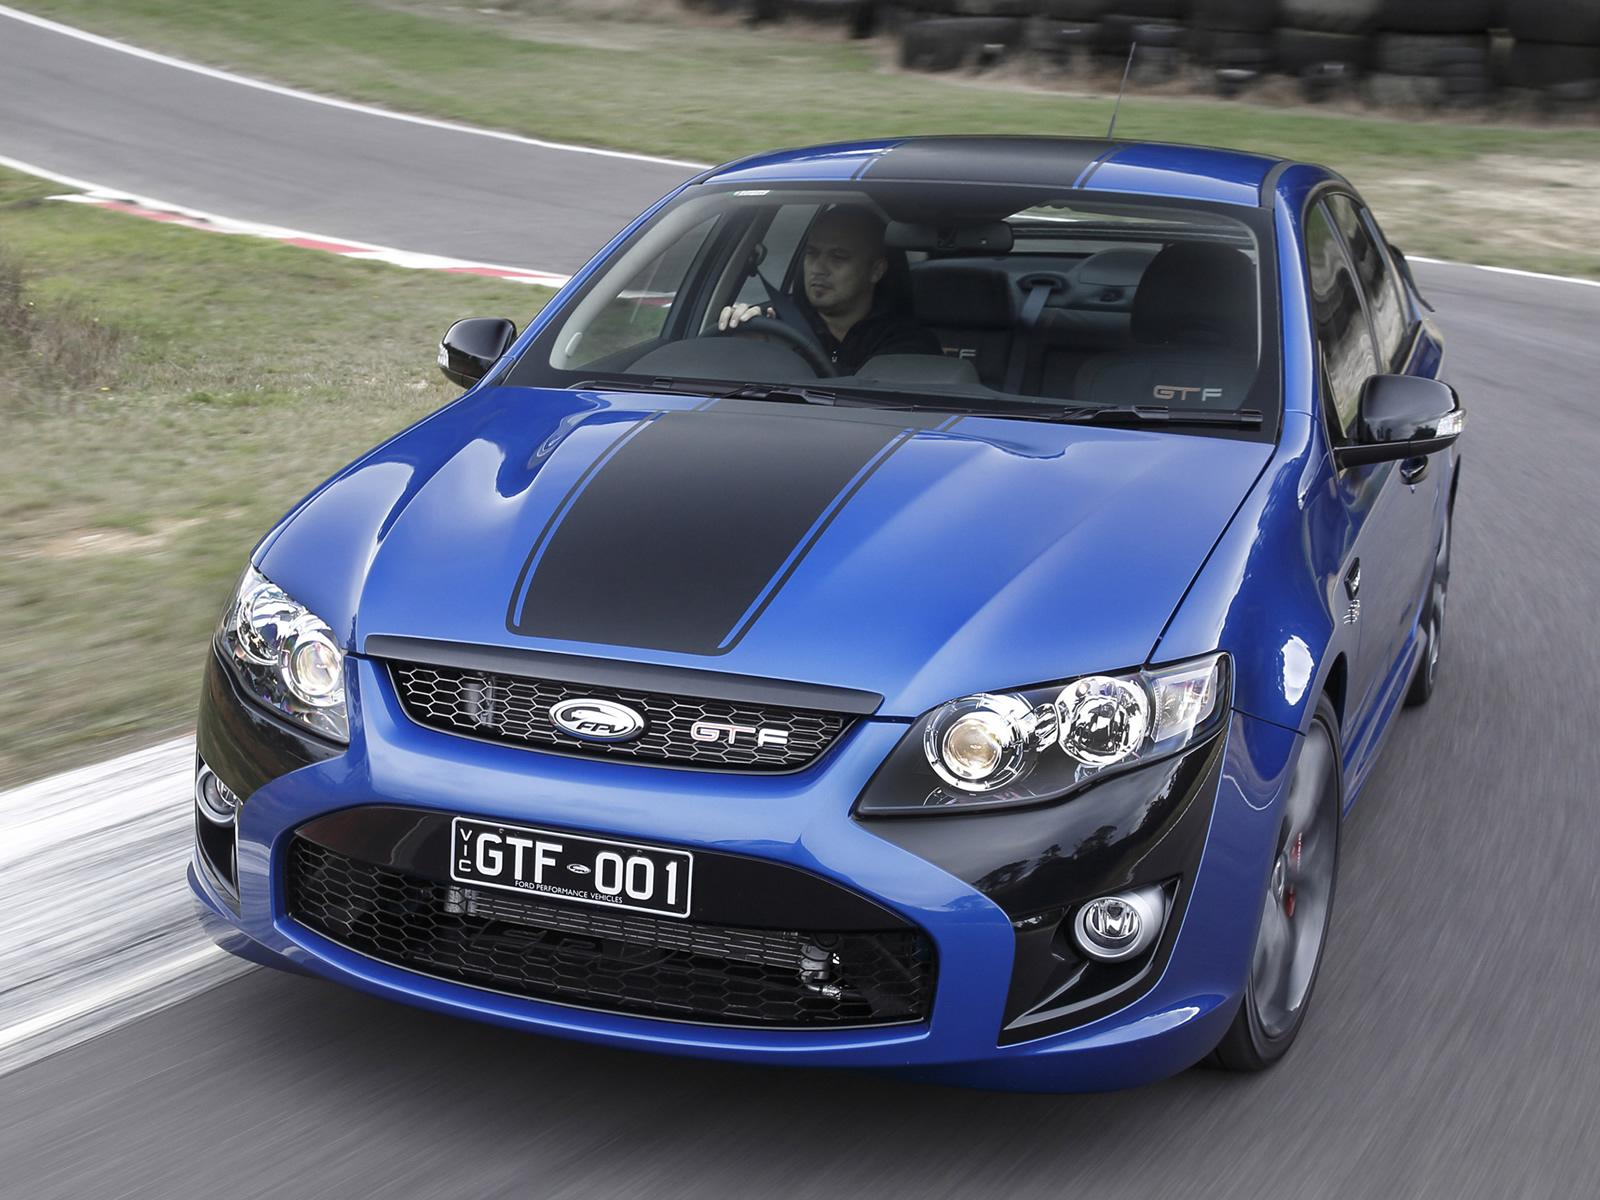 Fpv gt f 351 officially unveiled